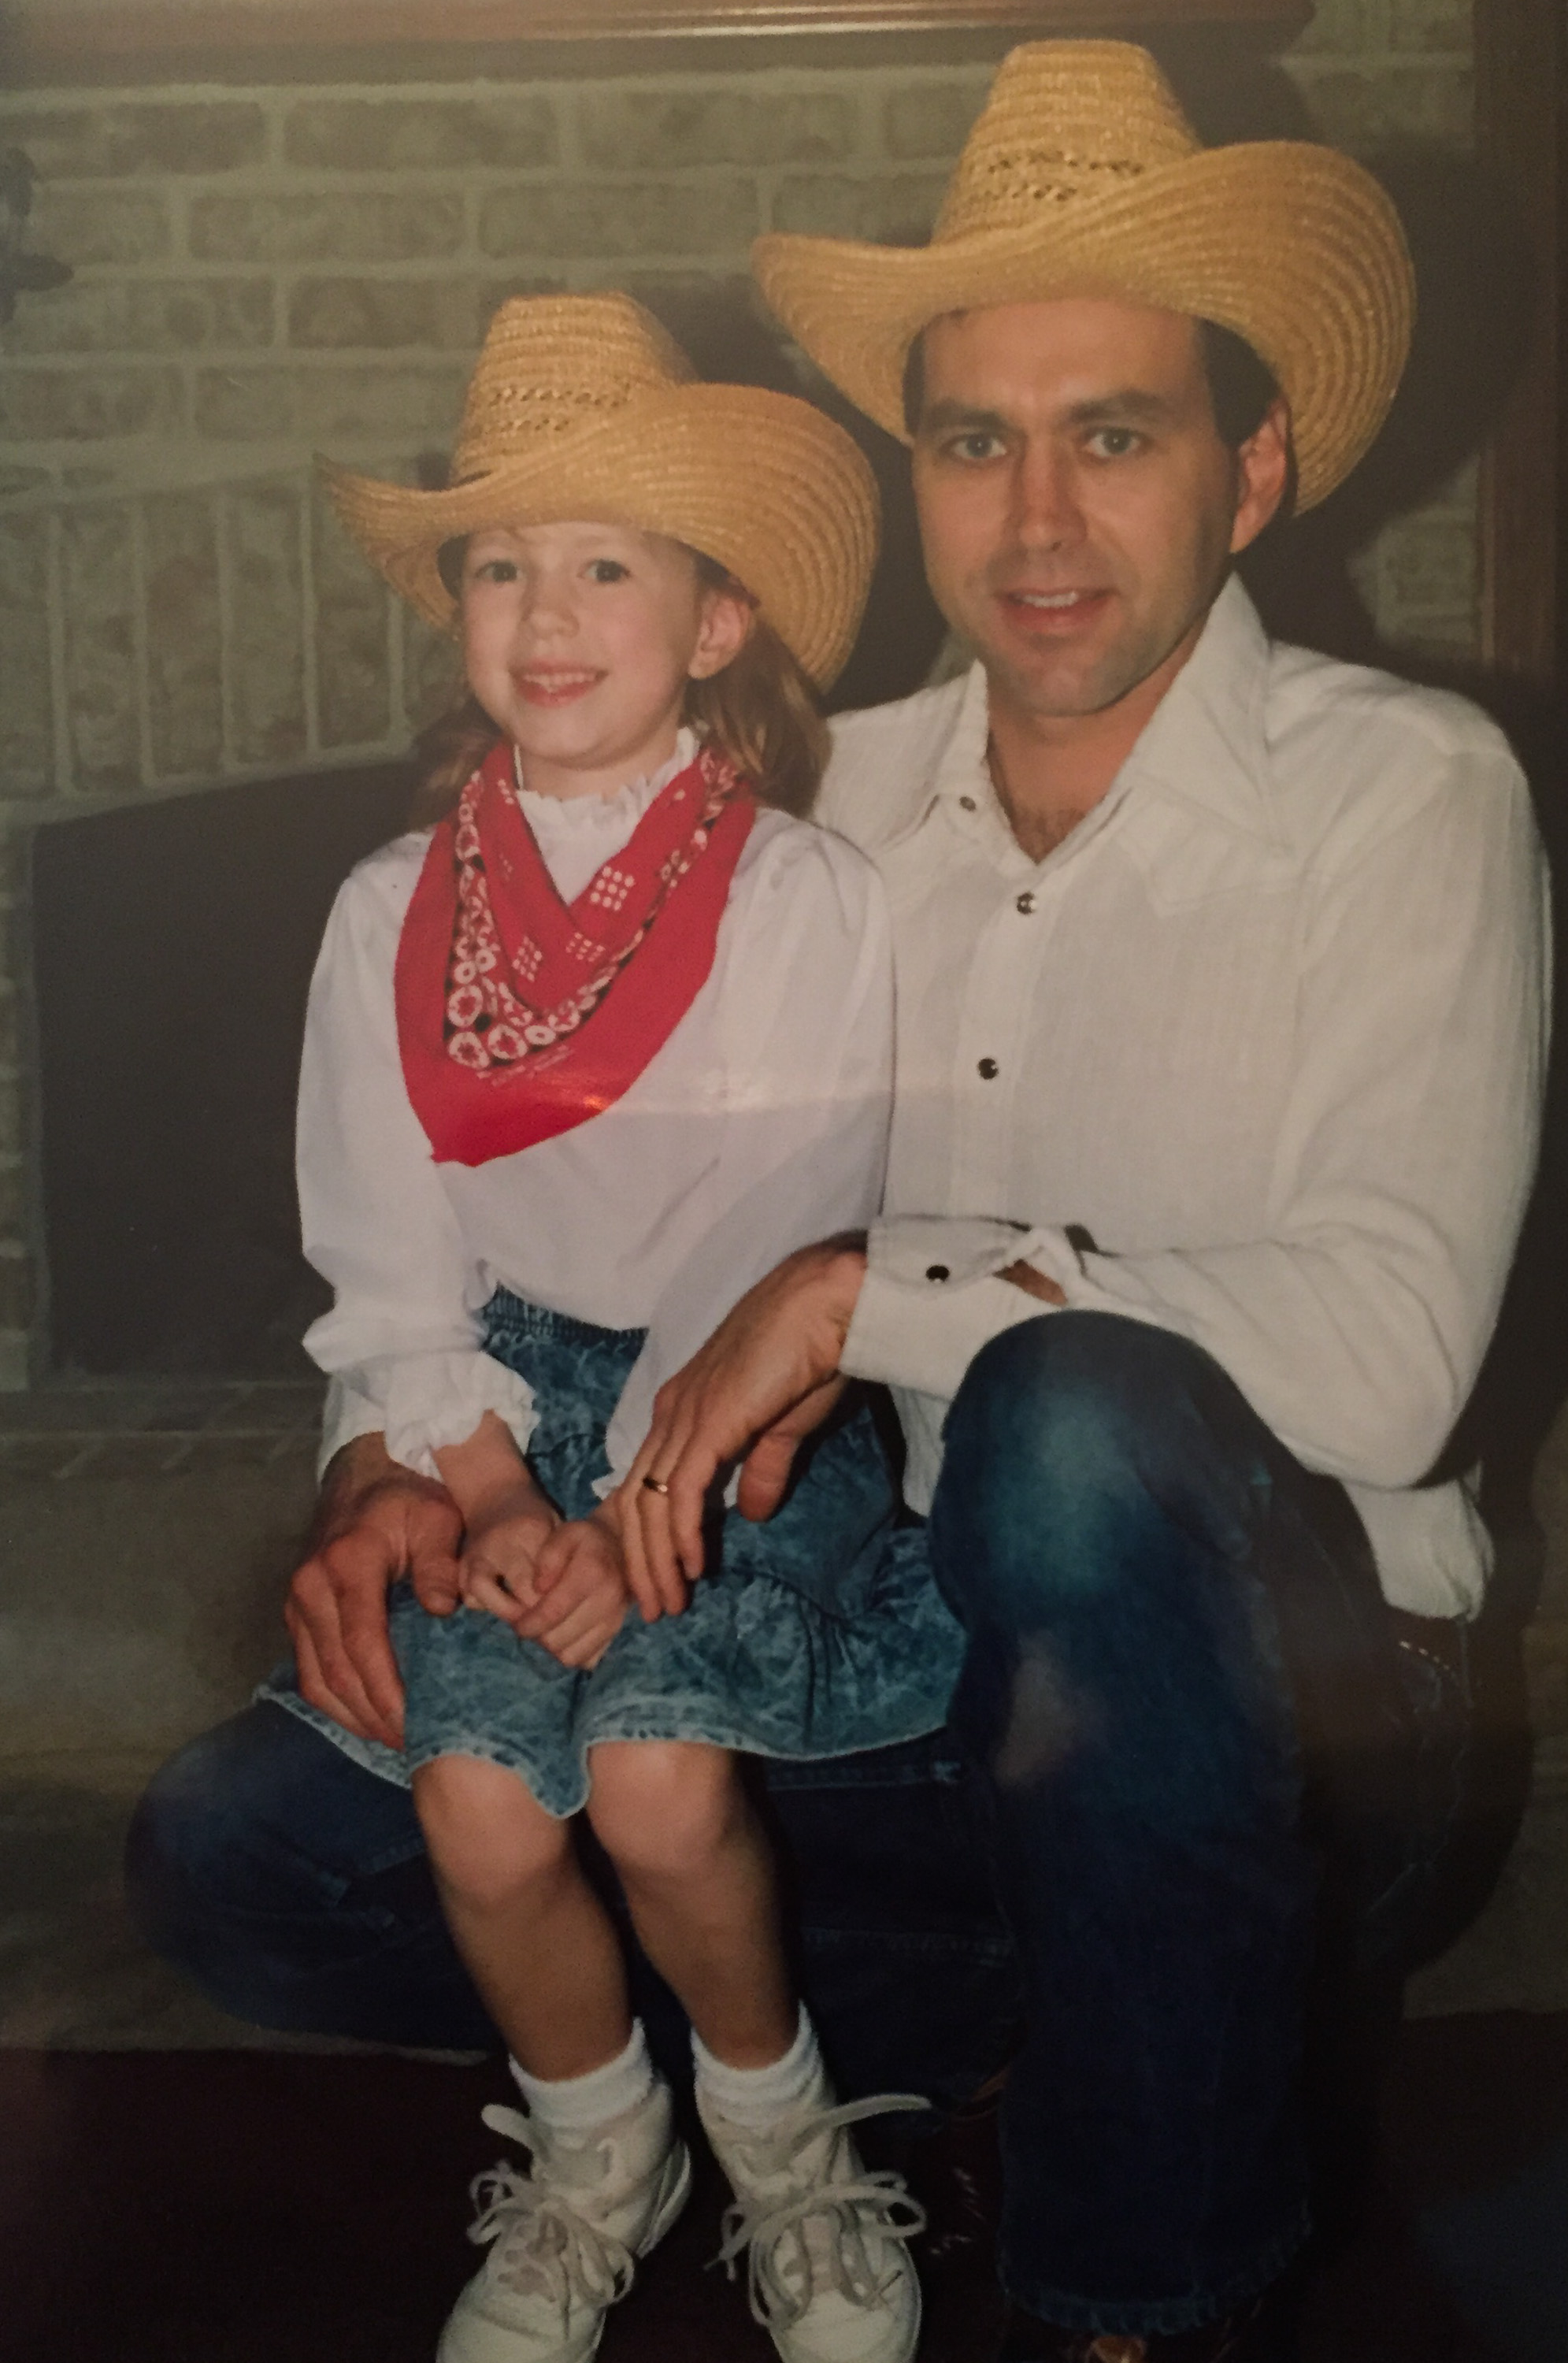 Me and my Dad + Texas vibes. Mid 1980's.